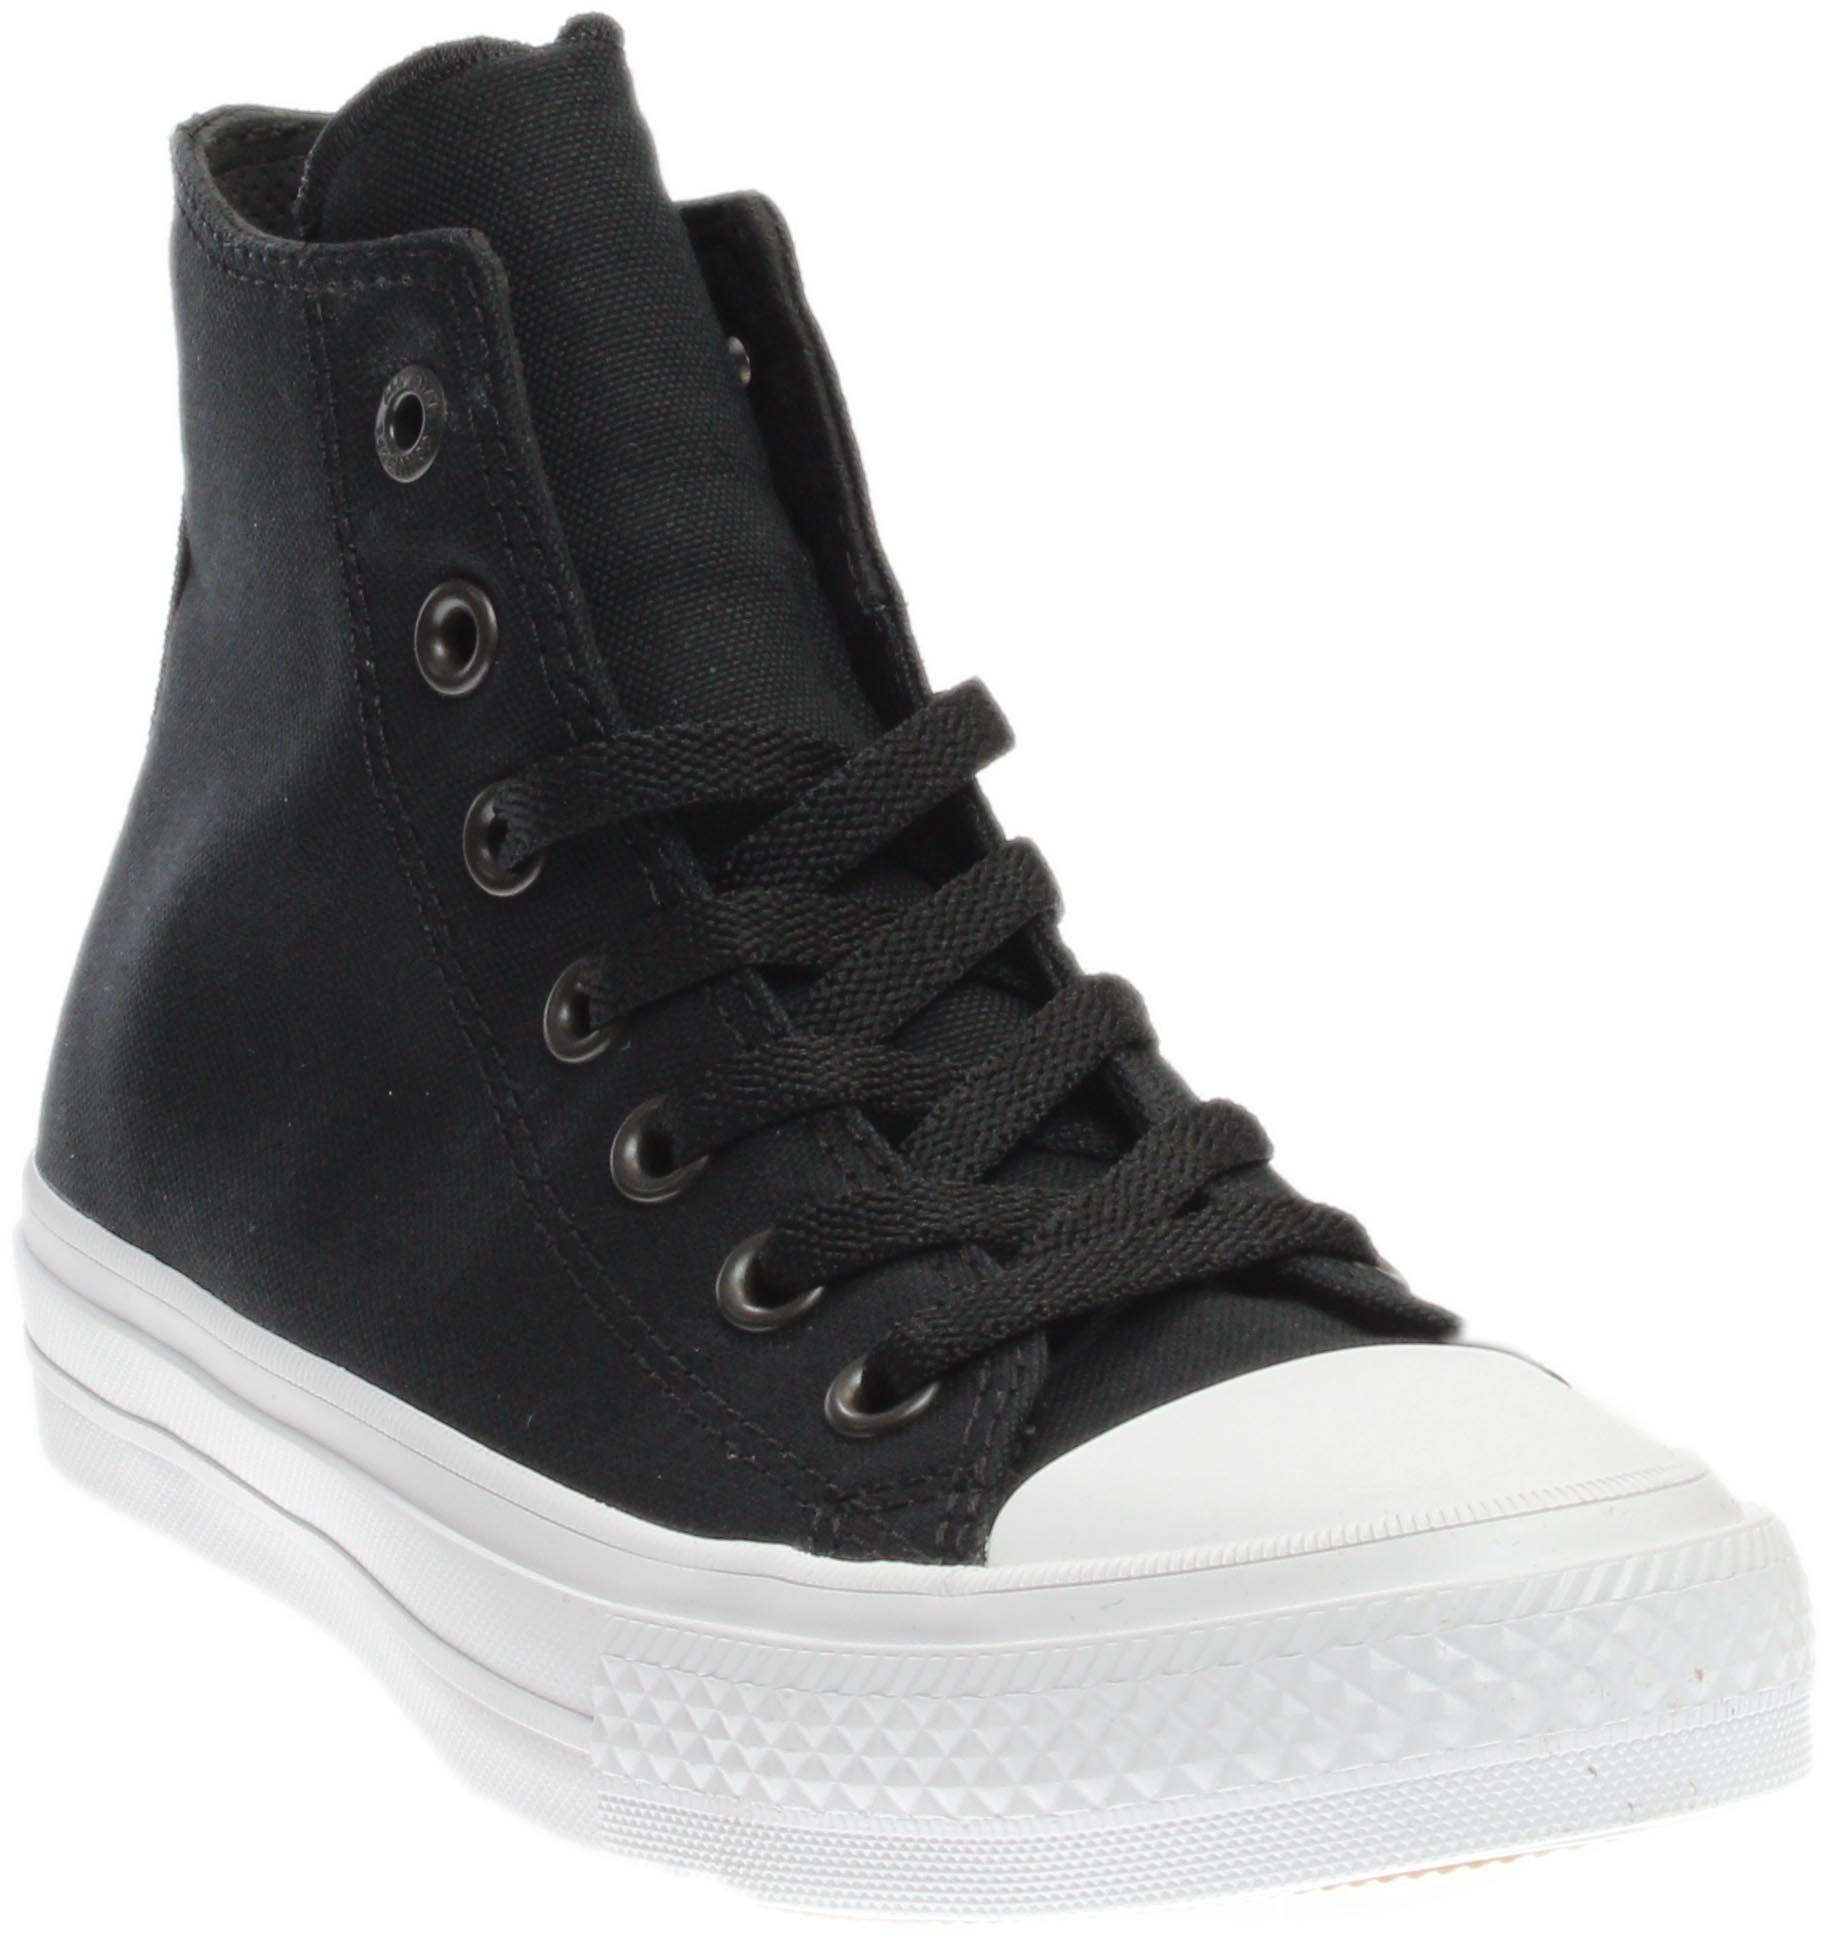 085bd7270bb Galleon - Converse Chuck Taylor All Star Ii Hi Sneaker Junior s Shoes Size  5.5 Black White